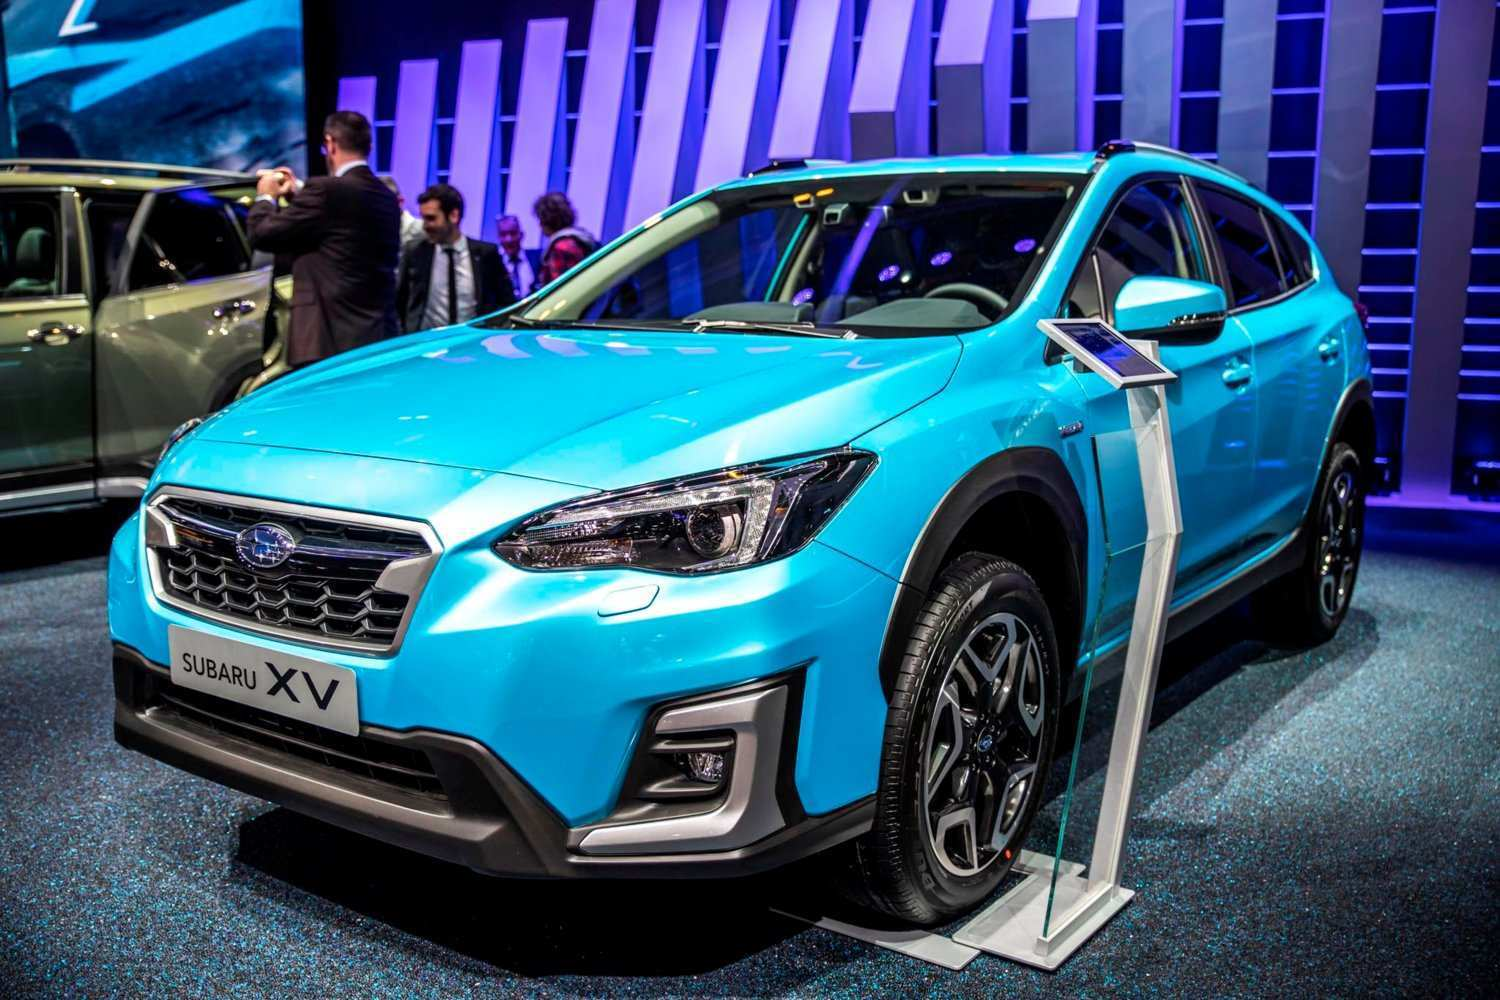 26 Concept of Novita Subaru 2019 Redesign and Concept by Novita Subaru 2019